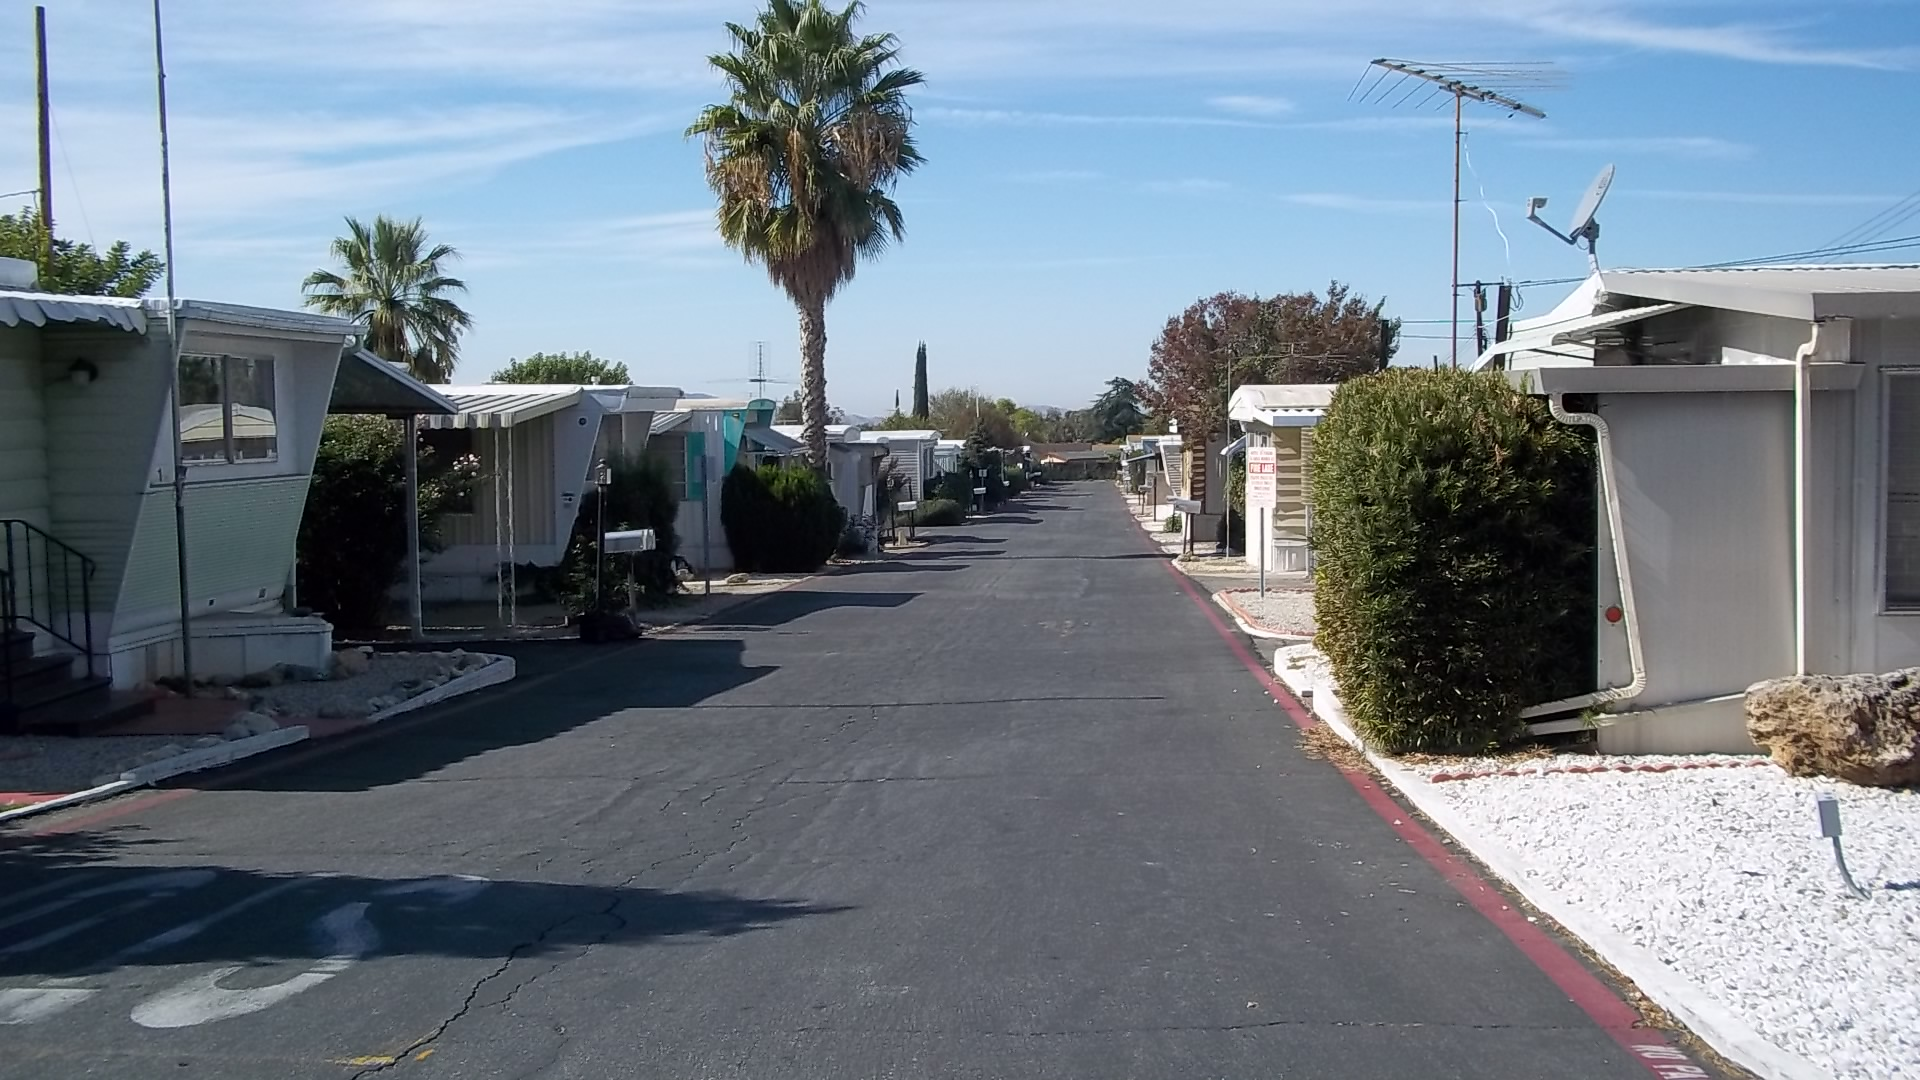 Mobile Home Parks For Sale In Pa on prefab homes in pa, mobile home dealers in pa, double wide mobile homes in pa, used mobile homes in pa, homes for rent in pa, mobile home communities in pa, mobile home ceiling replacement, mobile home parks in pa,